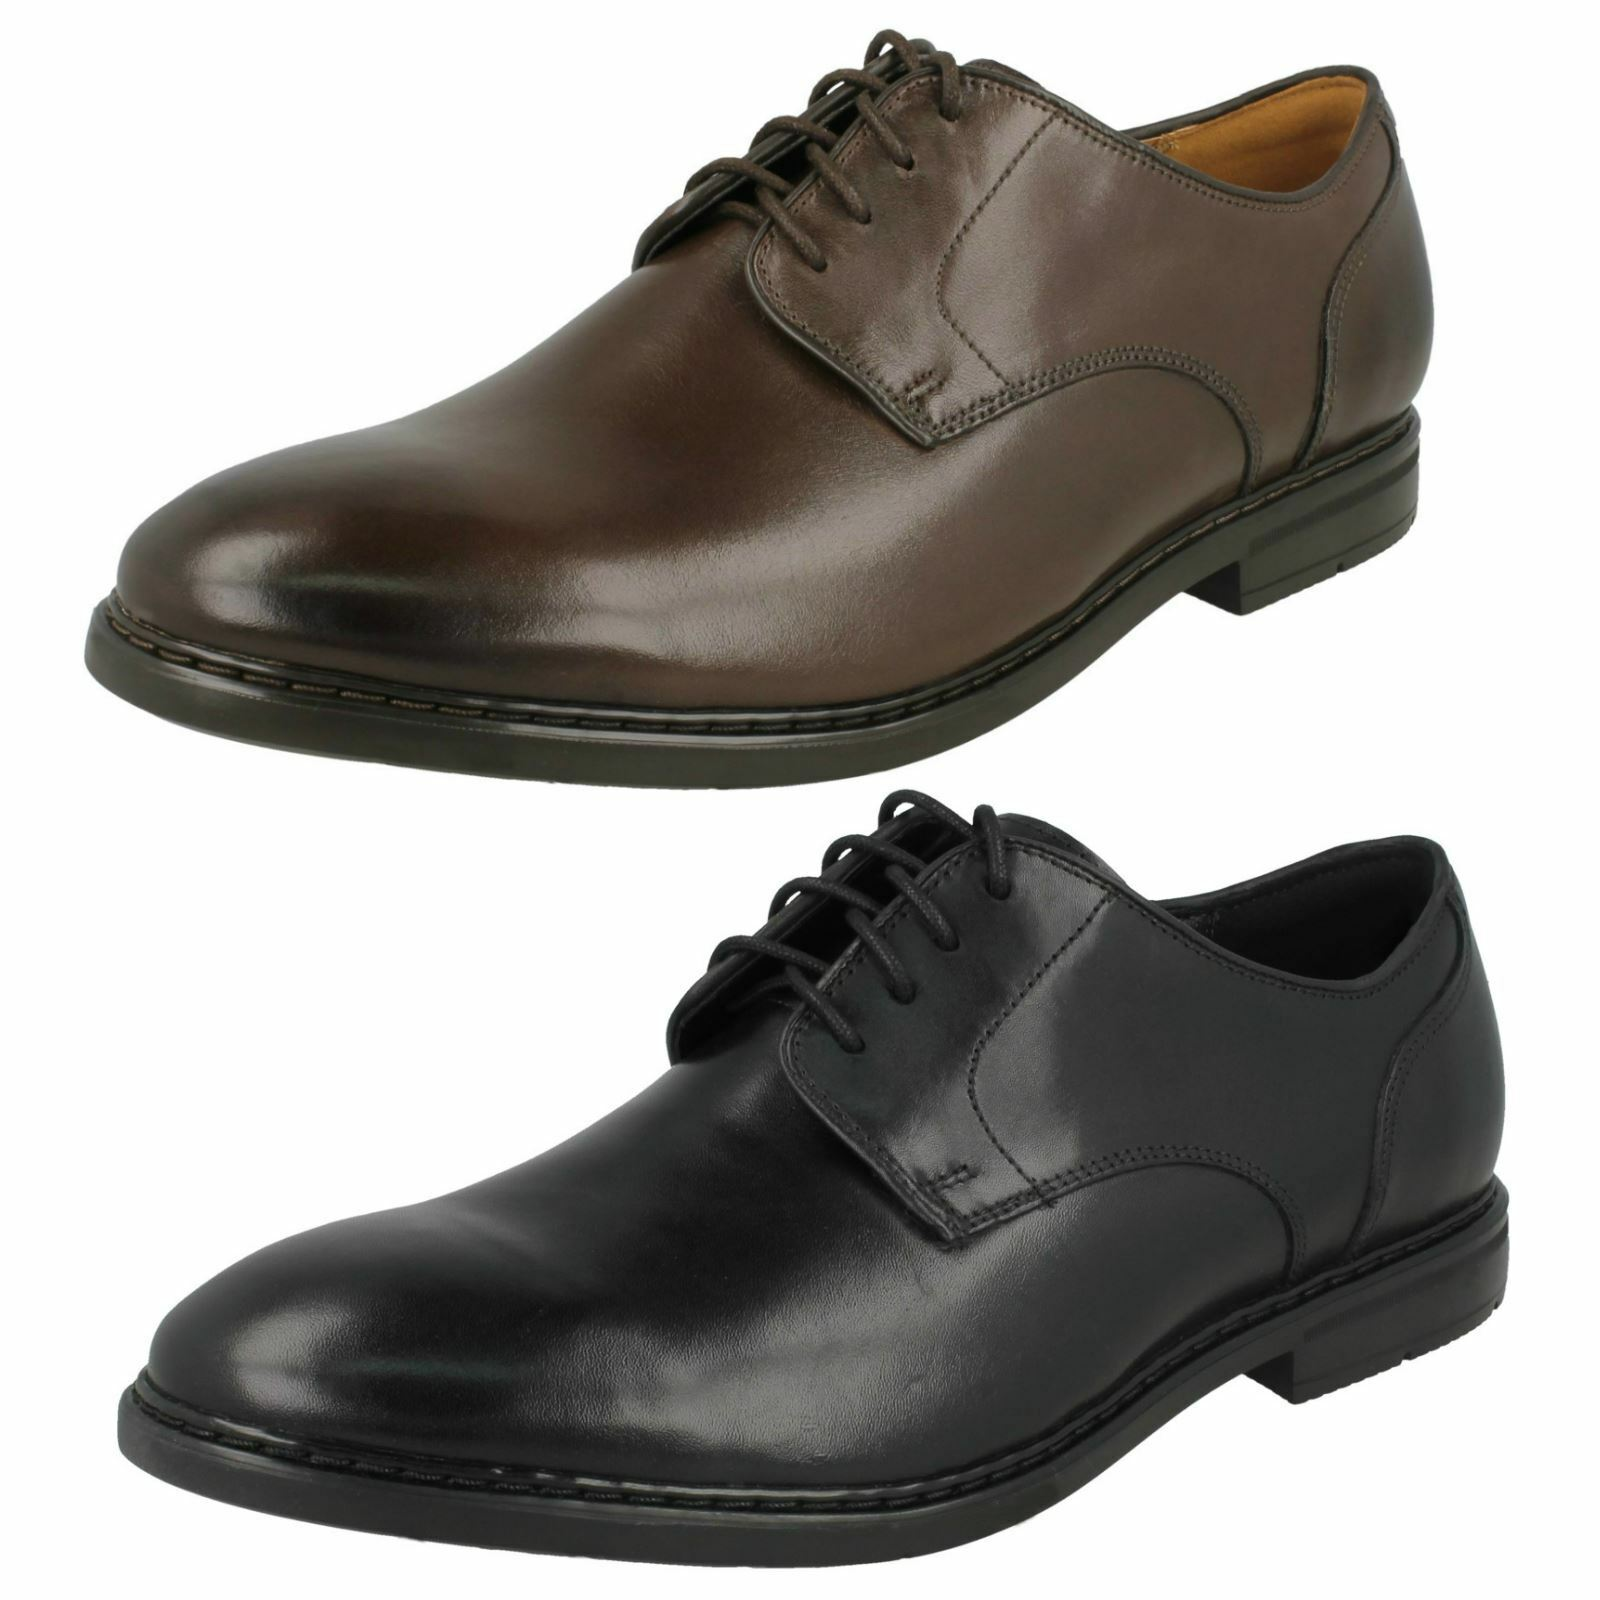 Mens Clarks Formal Lace Up shoes Banbury Lace